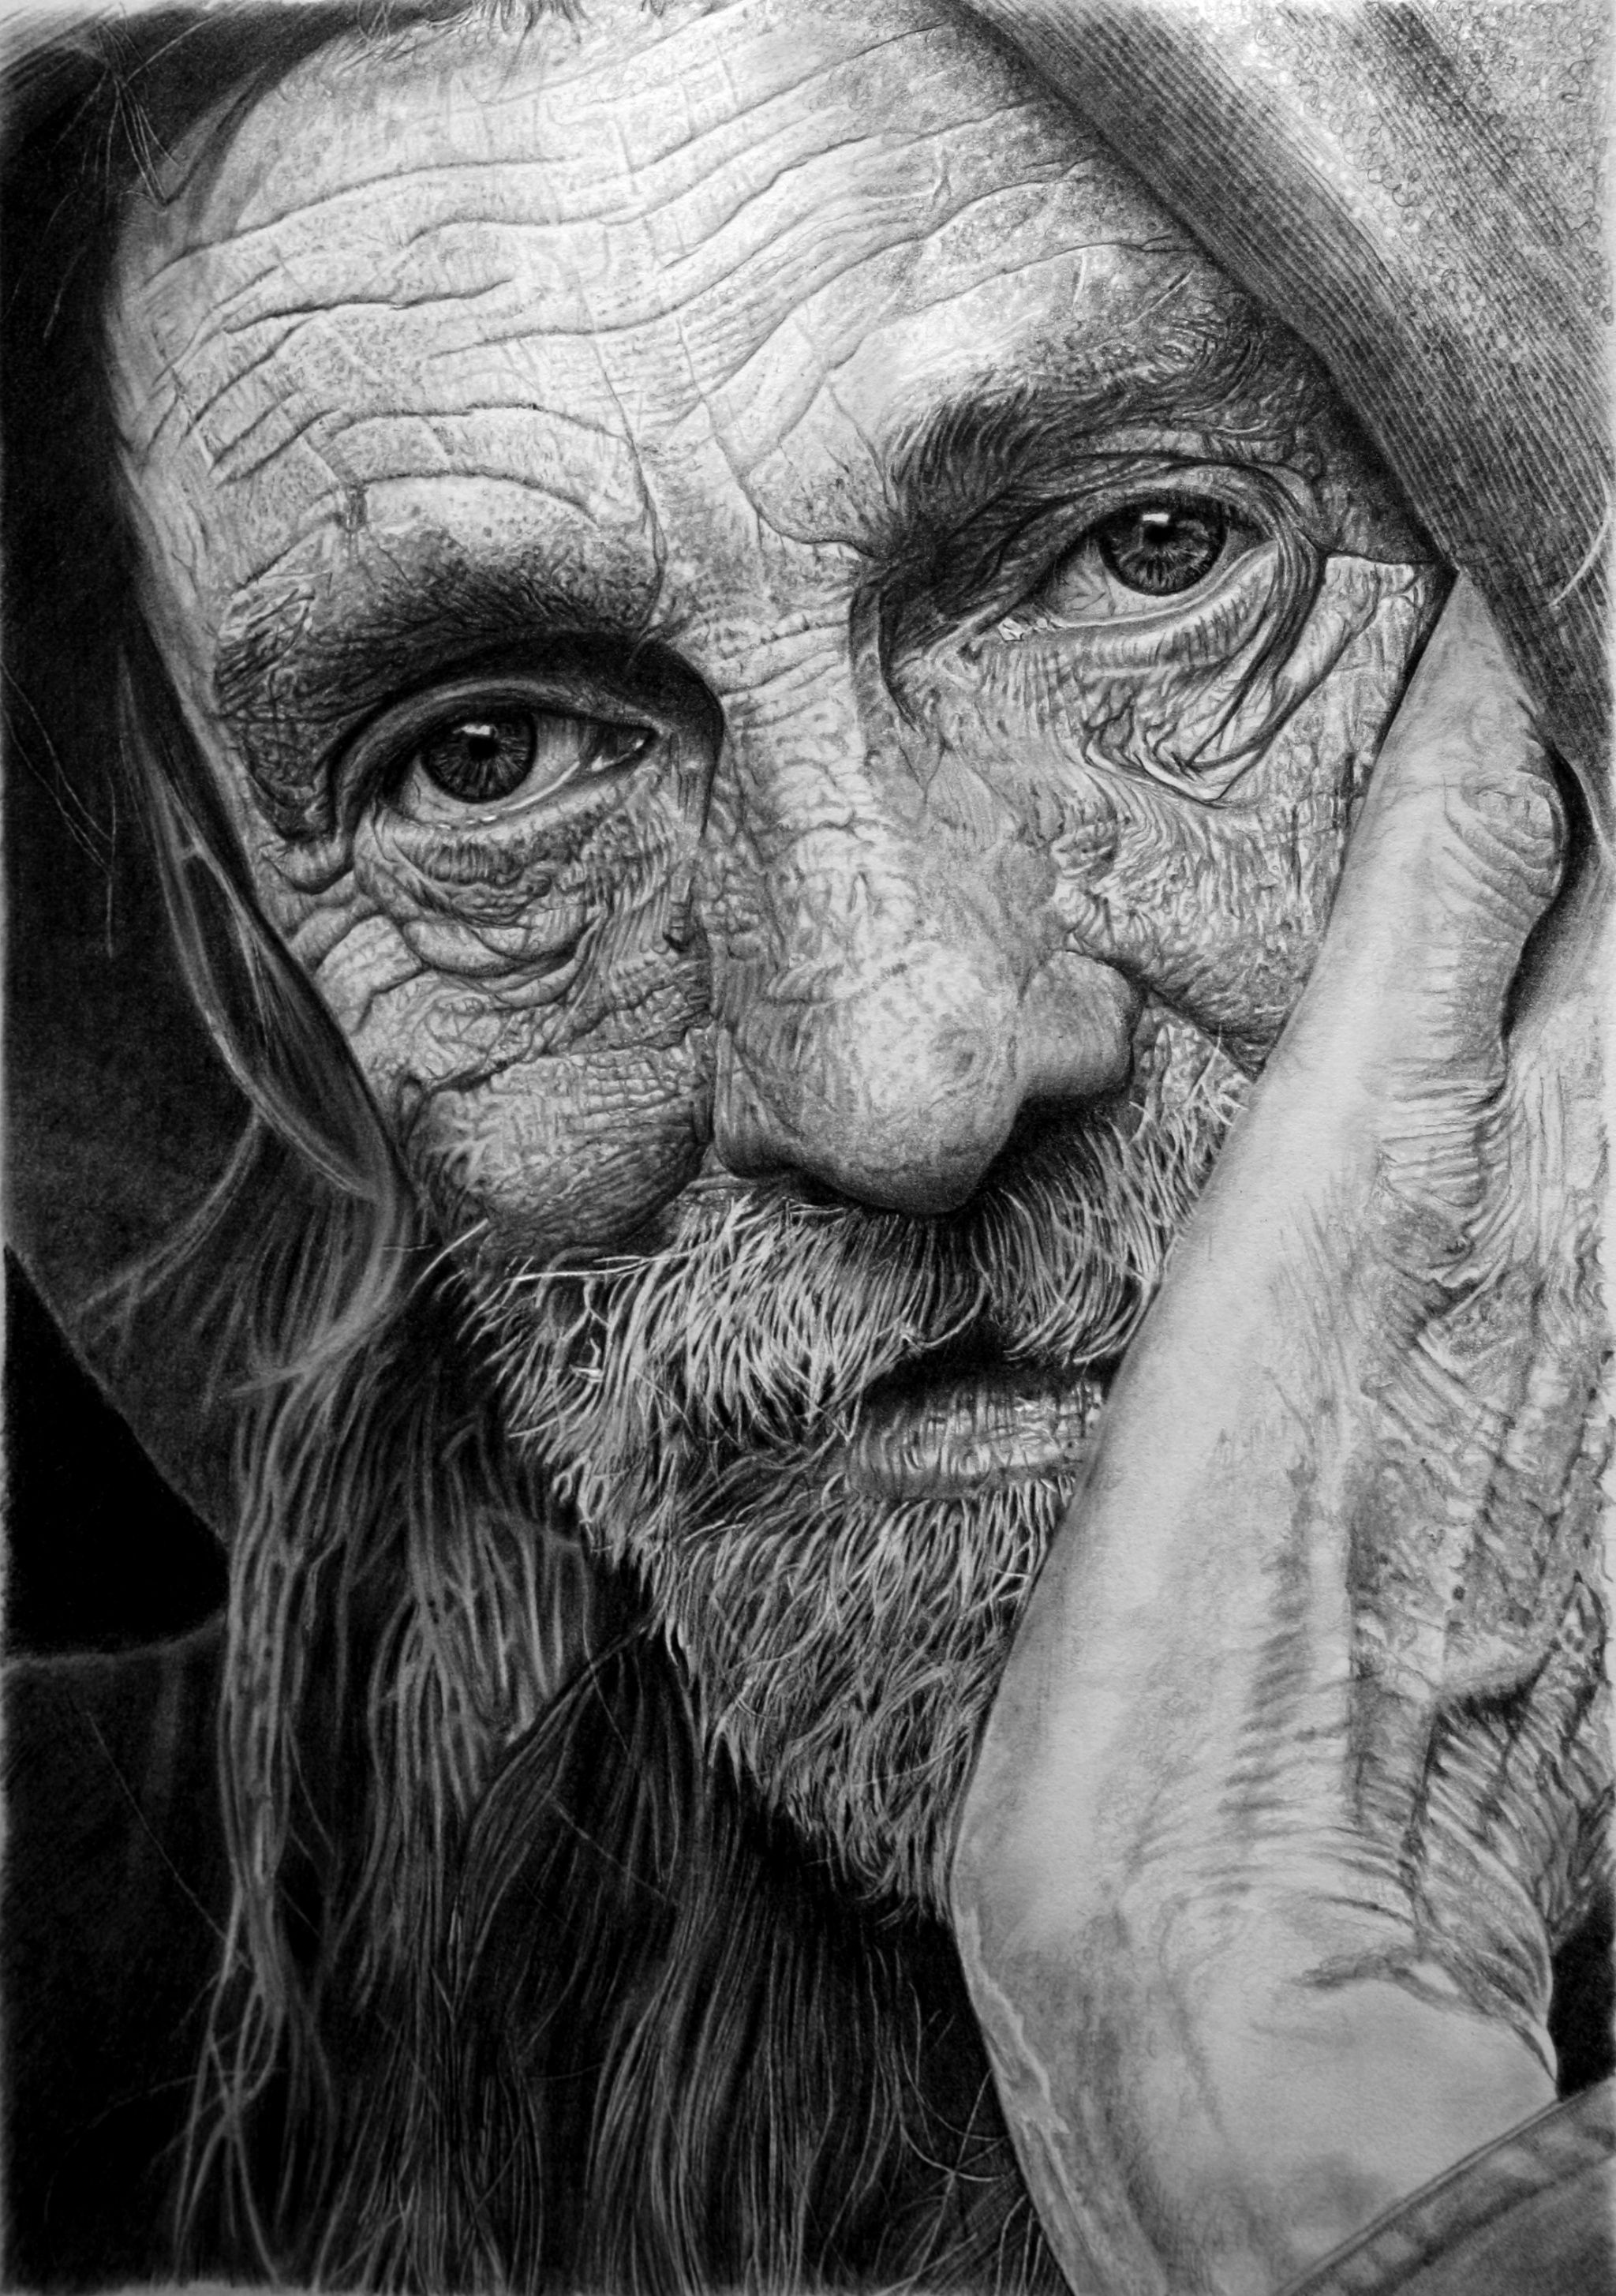 Art Of Sketchezzz Hyper Realistic Pencil Drawings By Italian - Artist uses pencils to create striking hyper realistic portraits